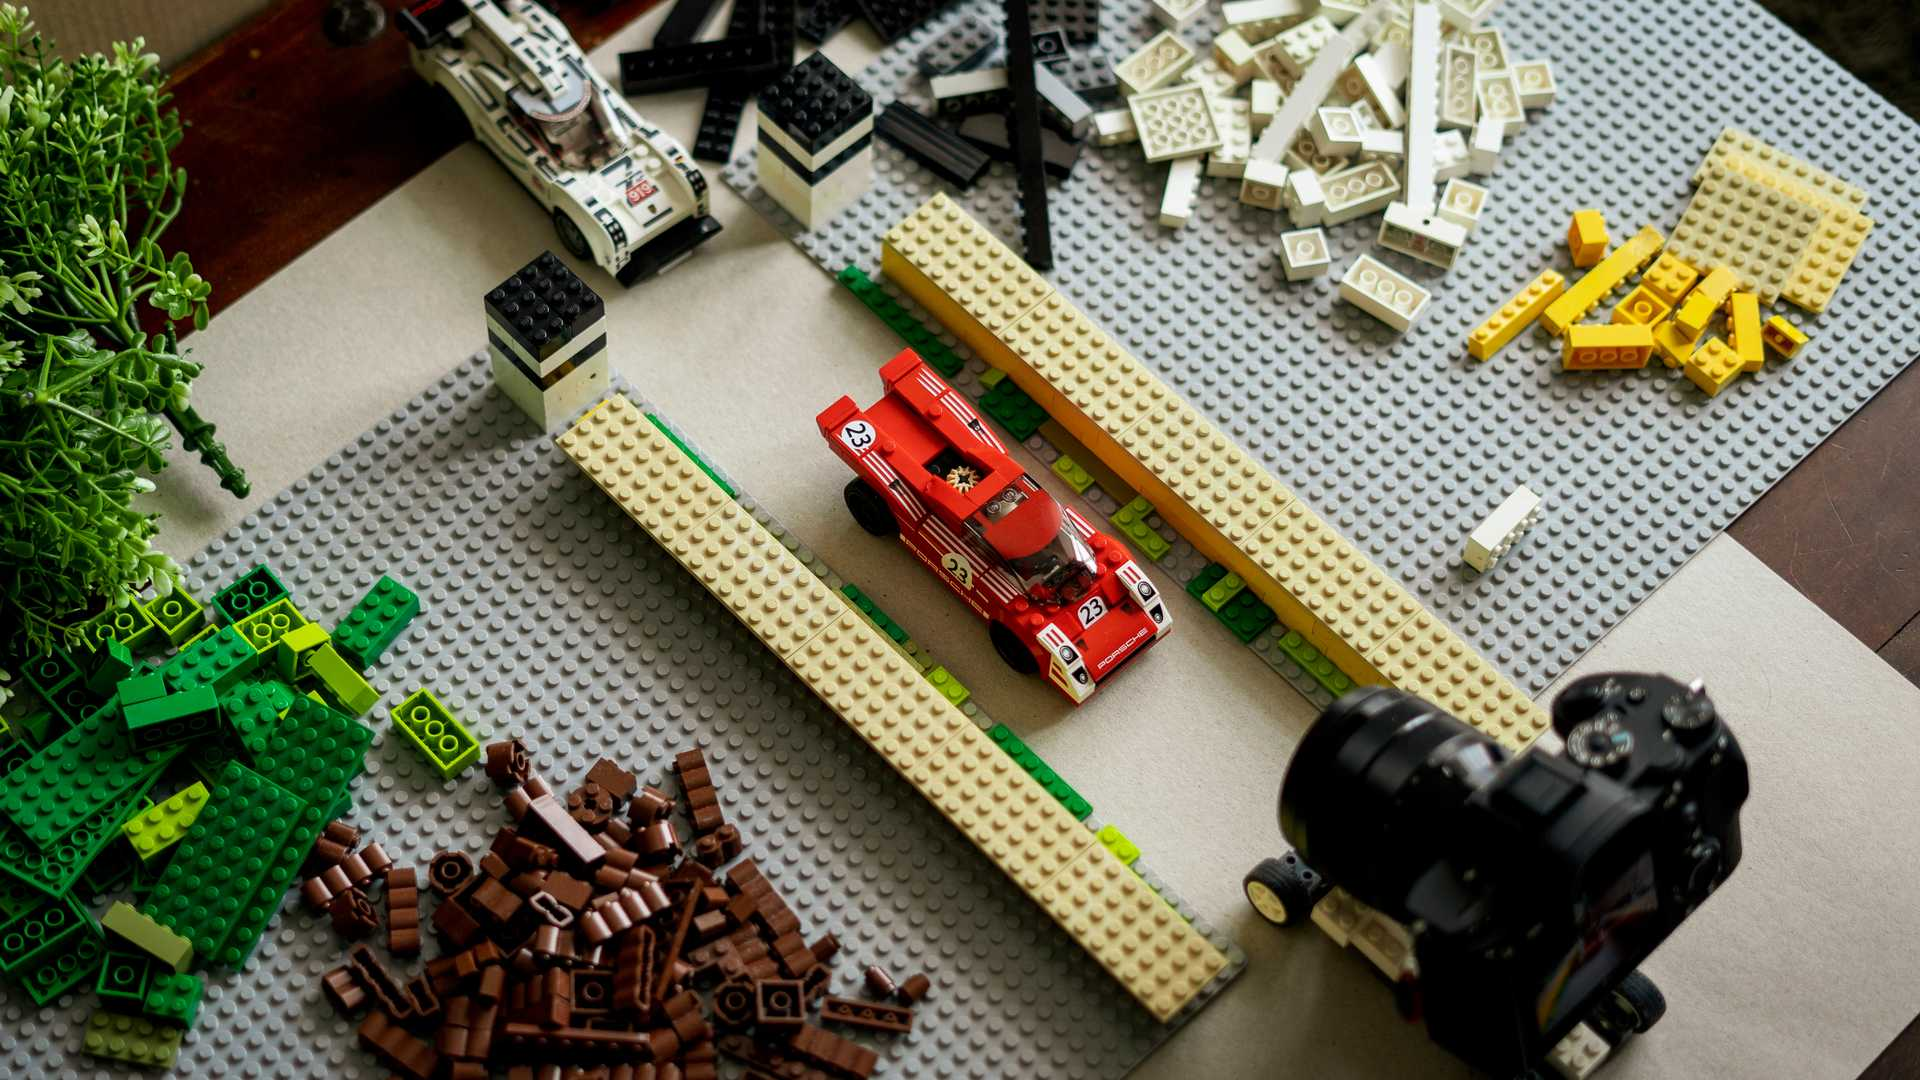 Porsche-Iconic-Moments-In-Lego-3